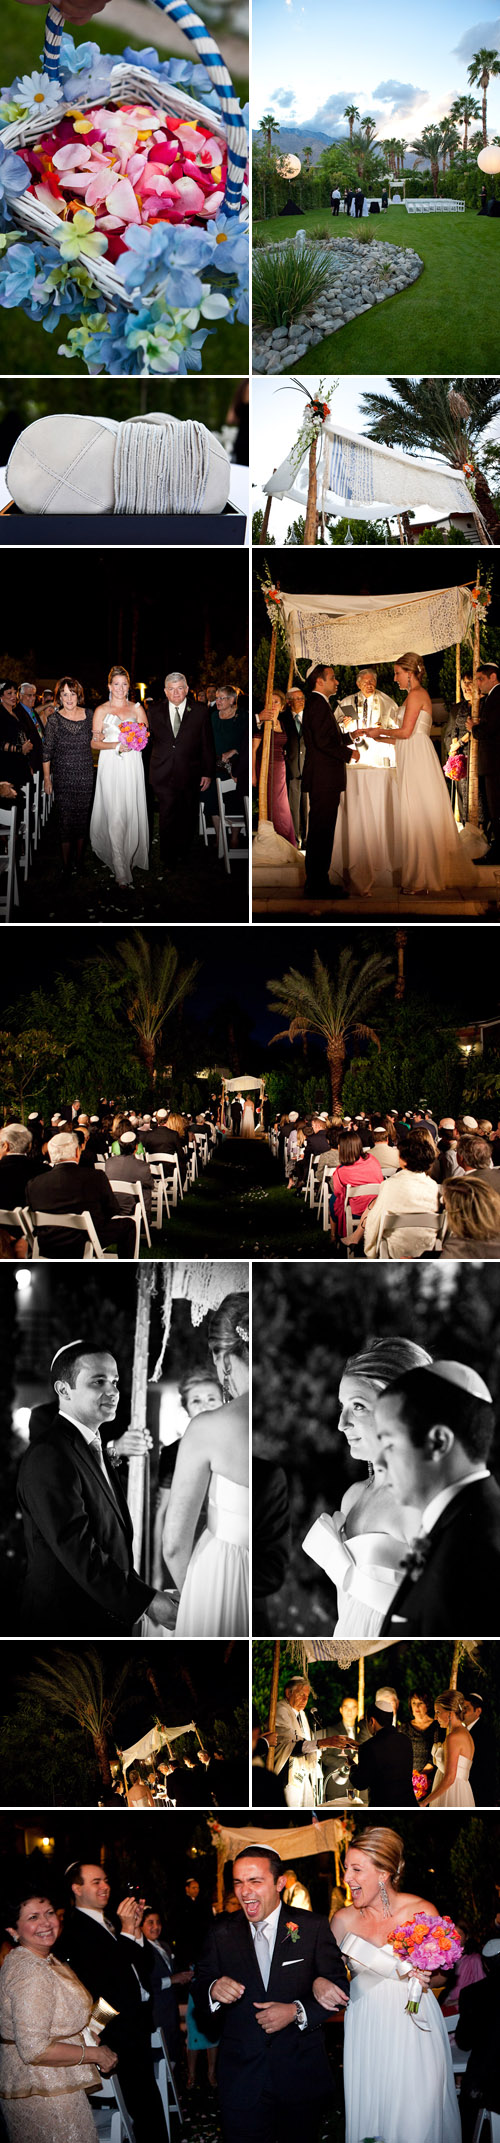 Palm Springs real wedding at Hotel Riviera, photos by Mary McHenry Photography